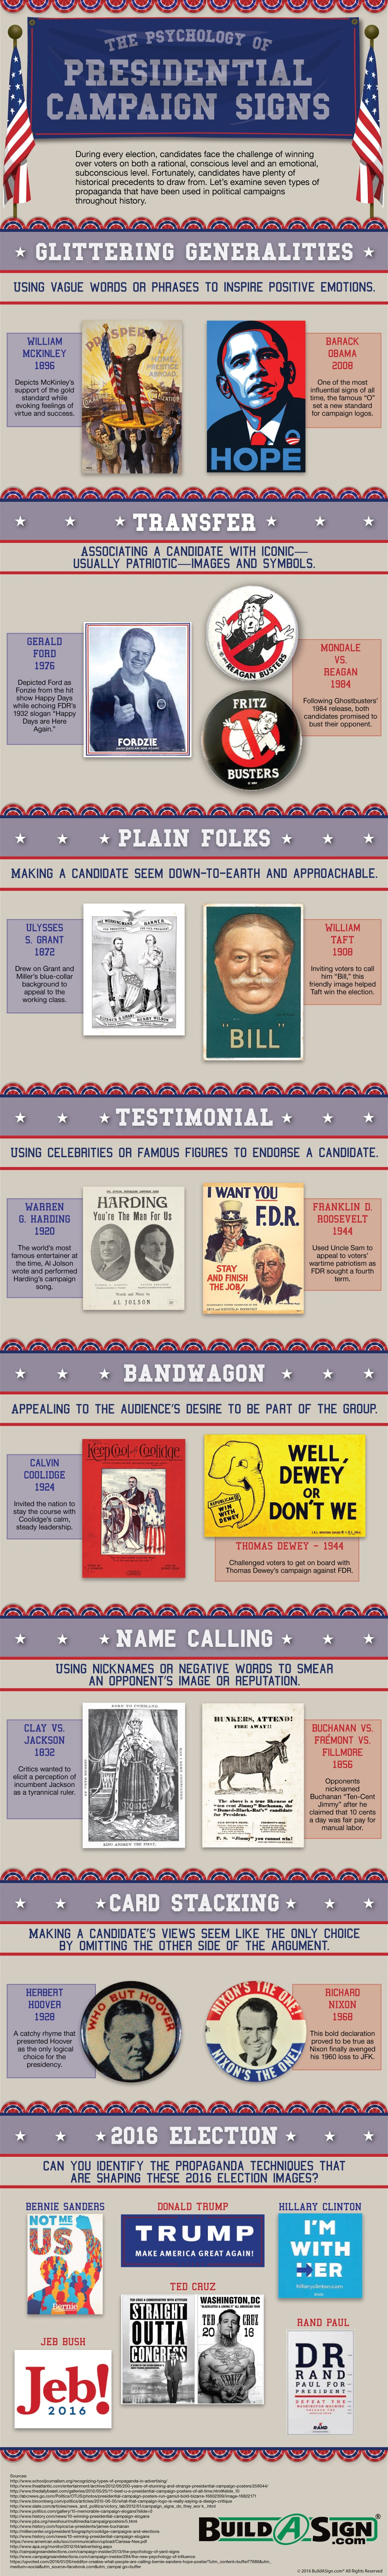 the-psychology of presidential campaign signs-min